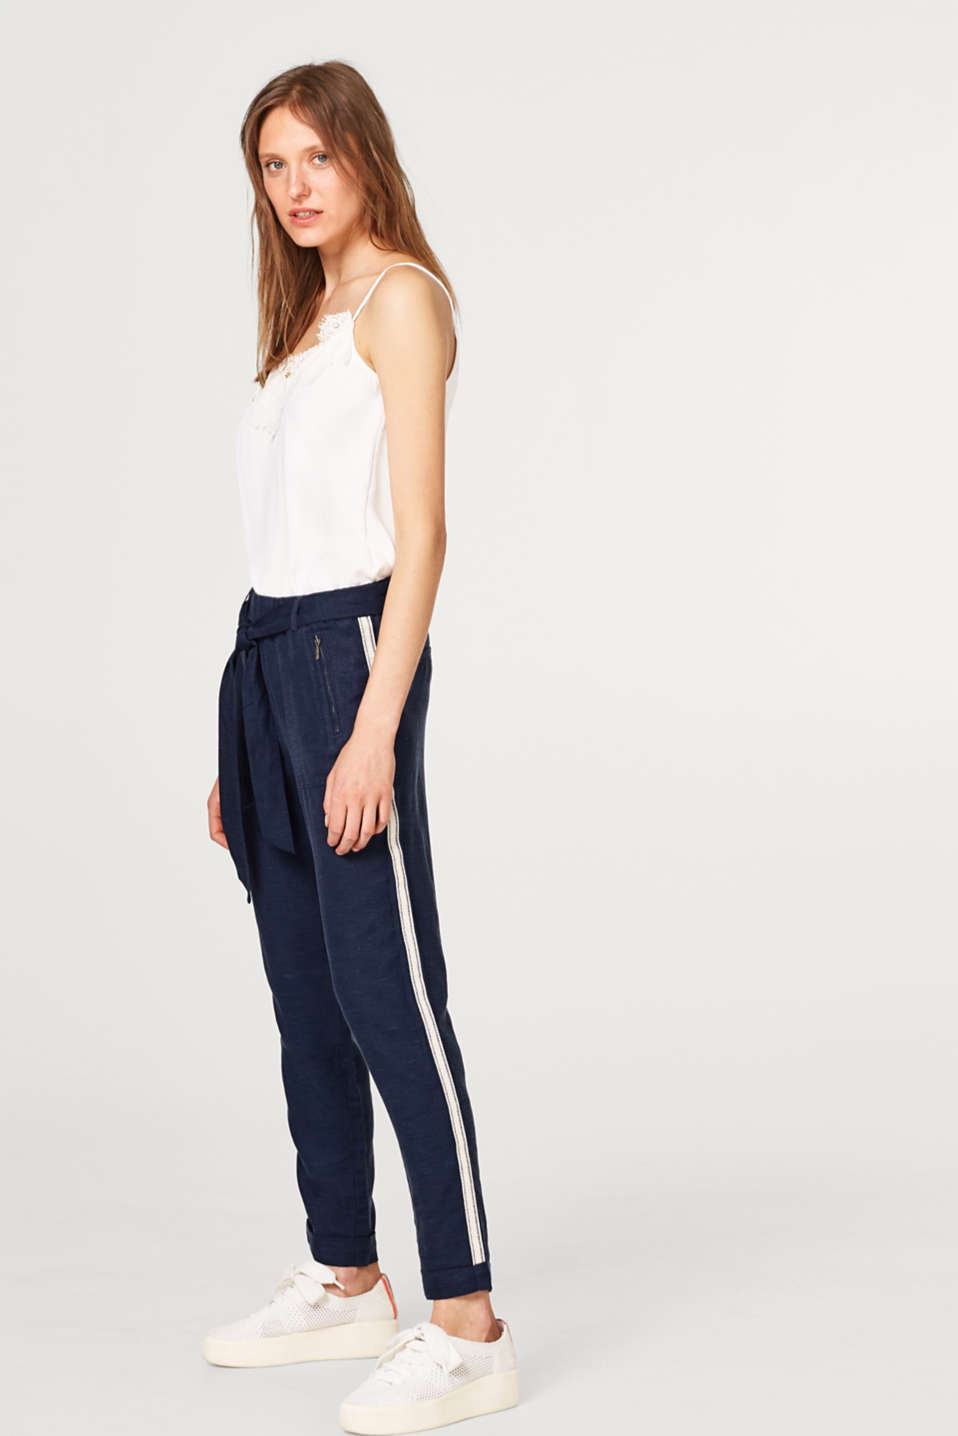 Made of blended linen: trousers with racing stripes